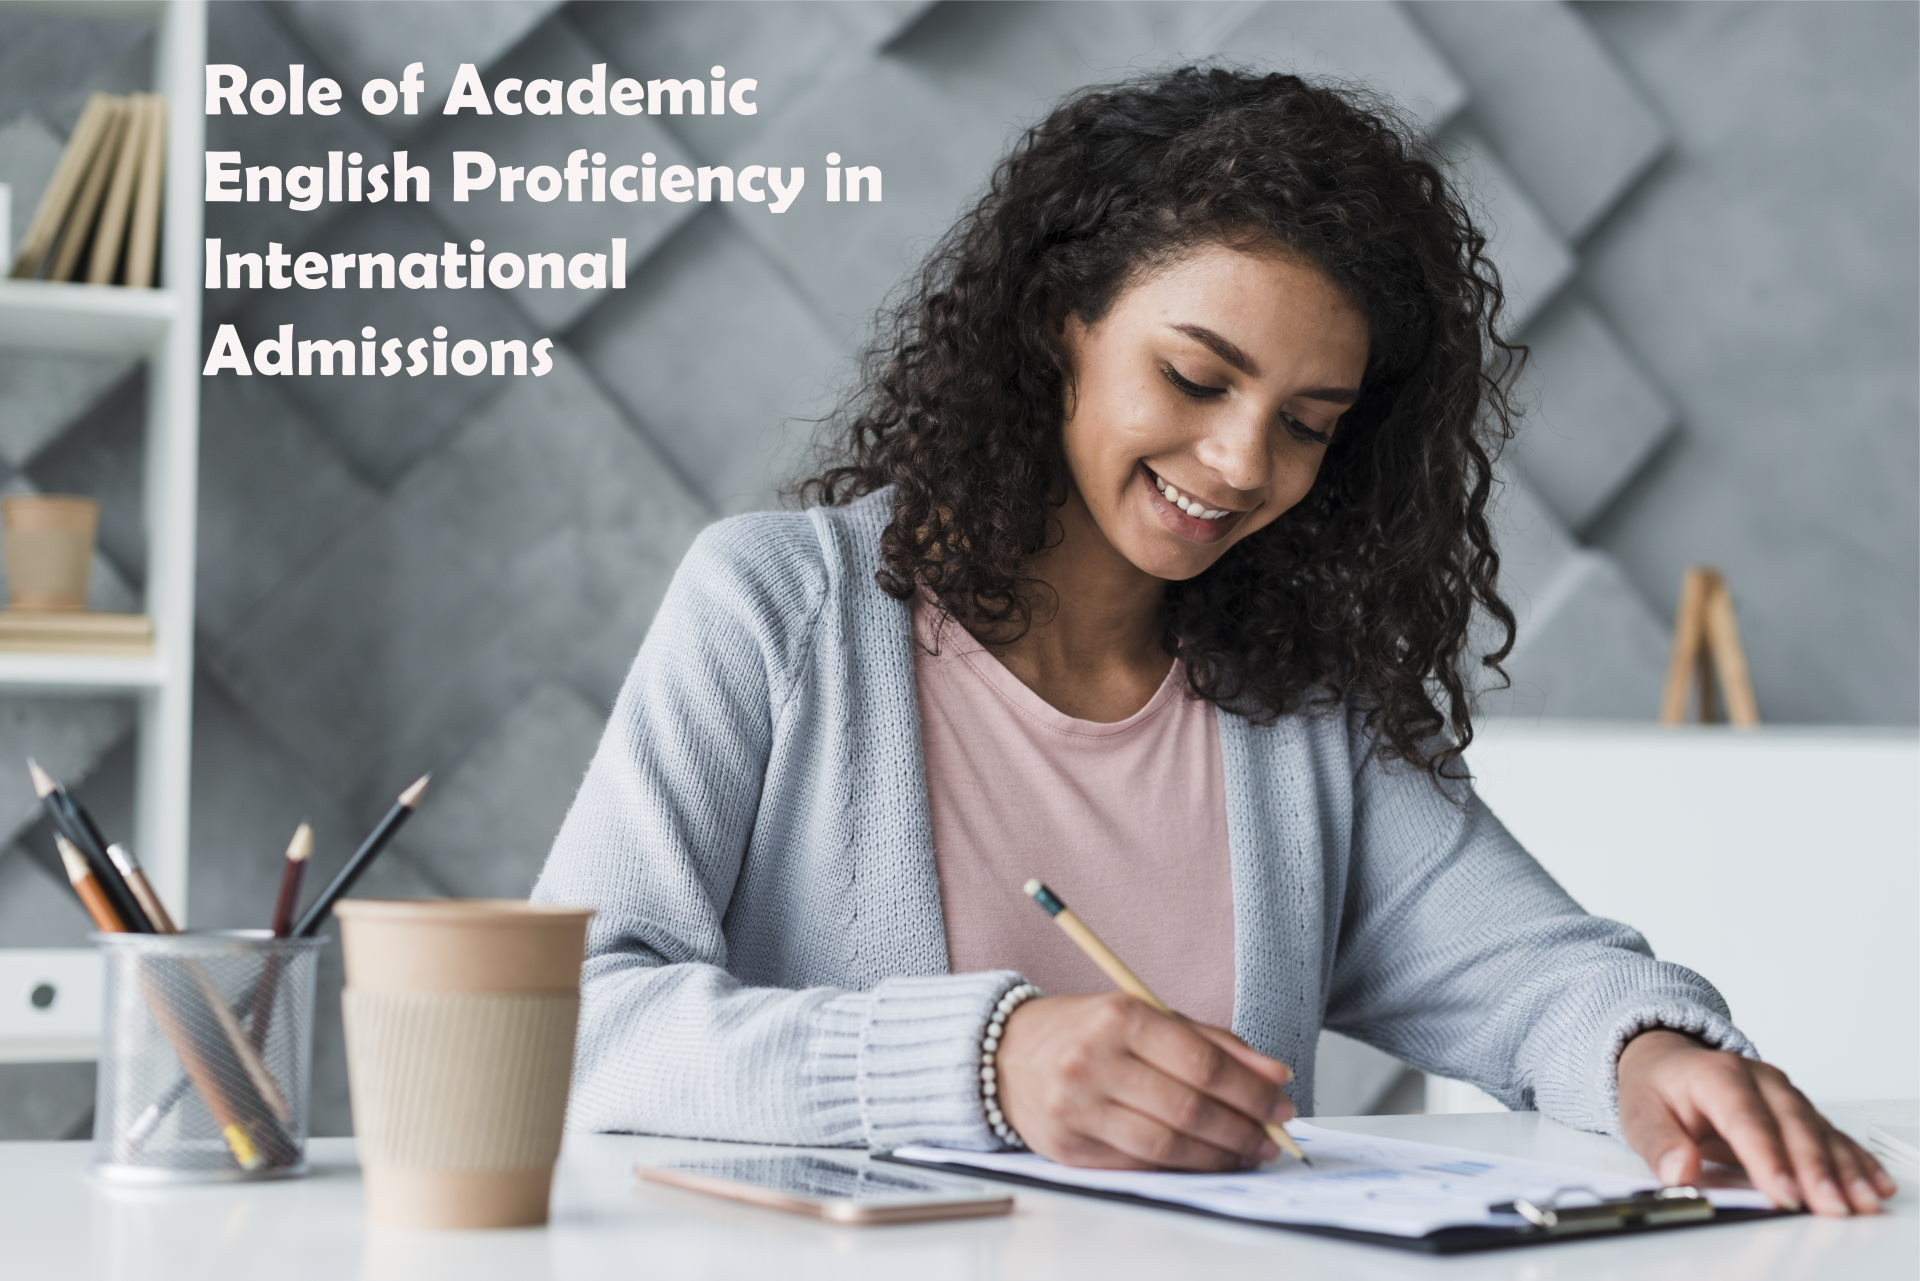 Underlining Quality and the Role of Academic English Proficiency in International Admissions